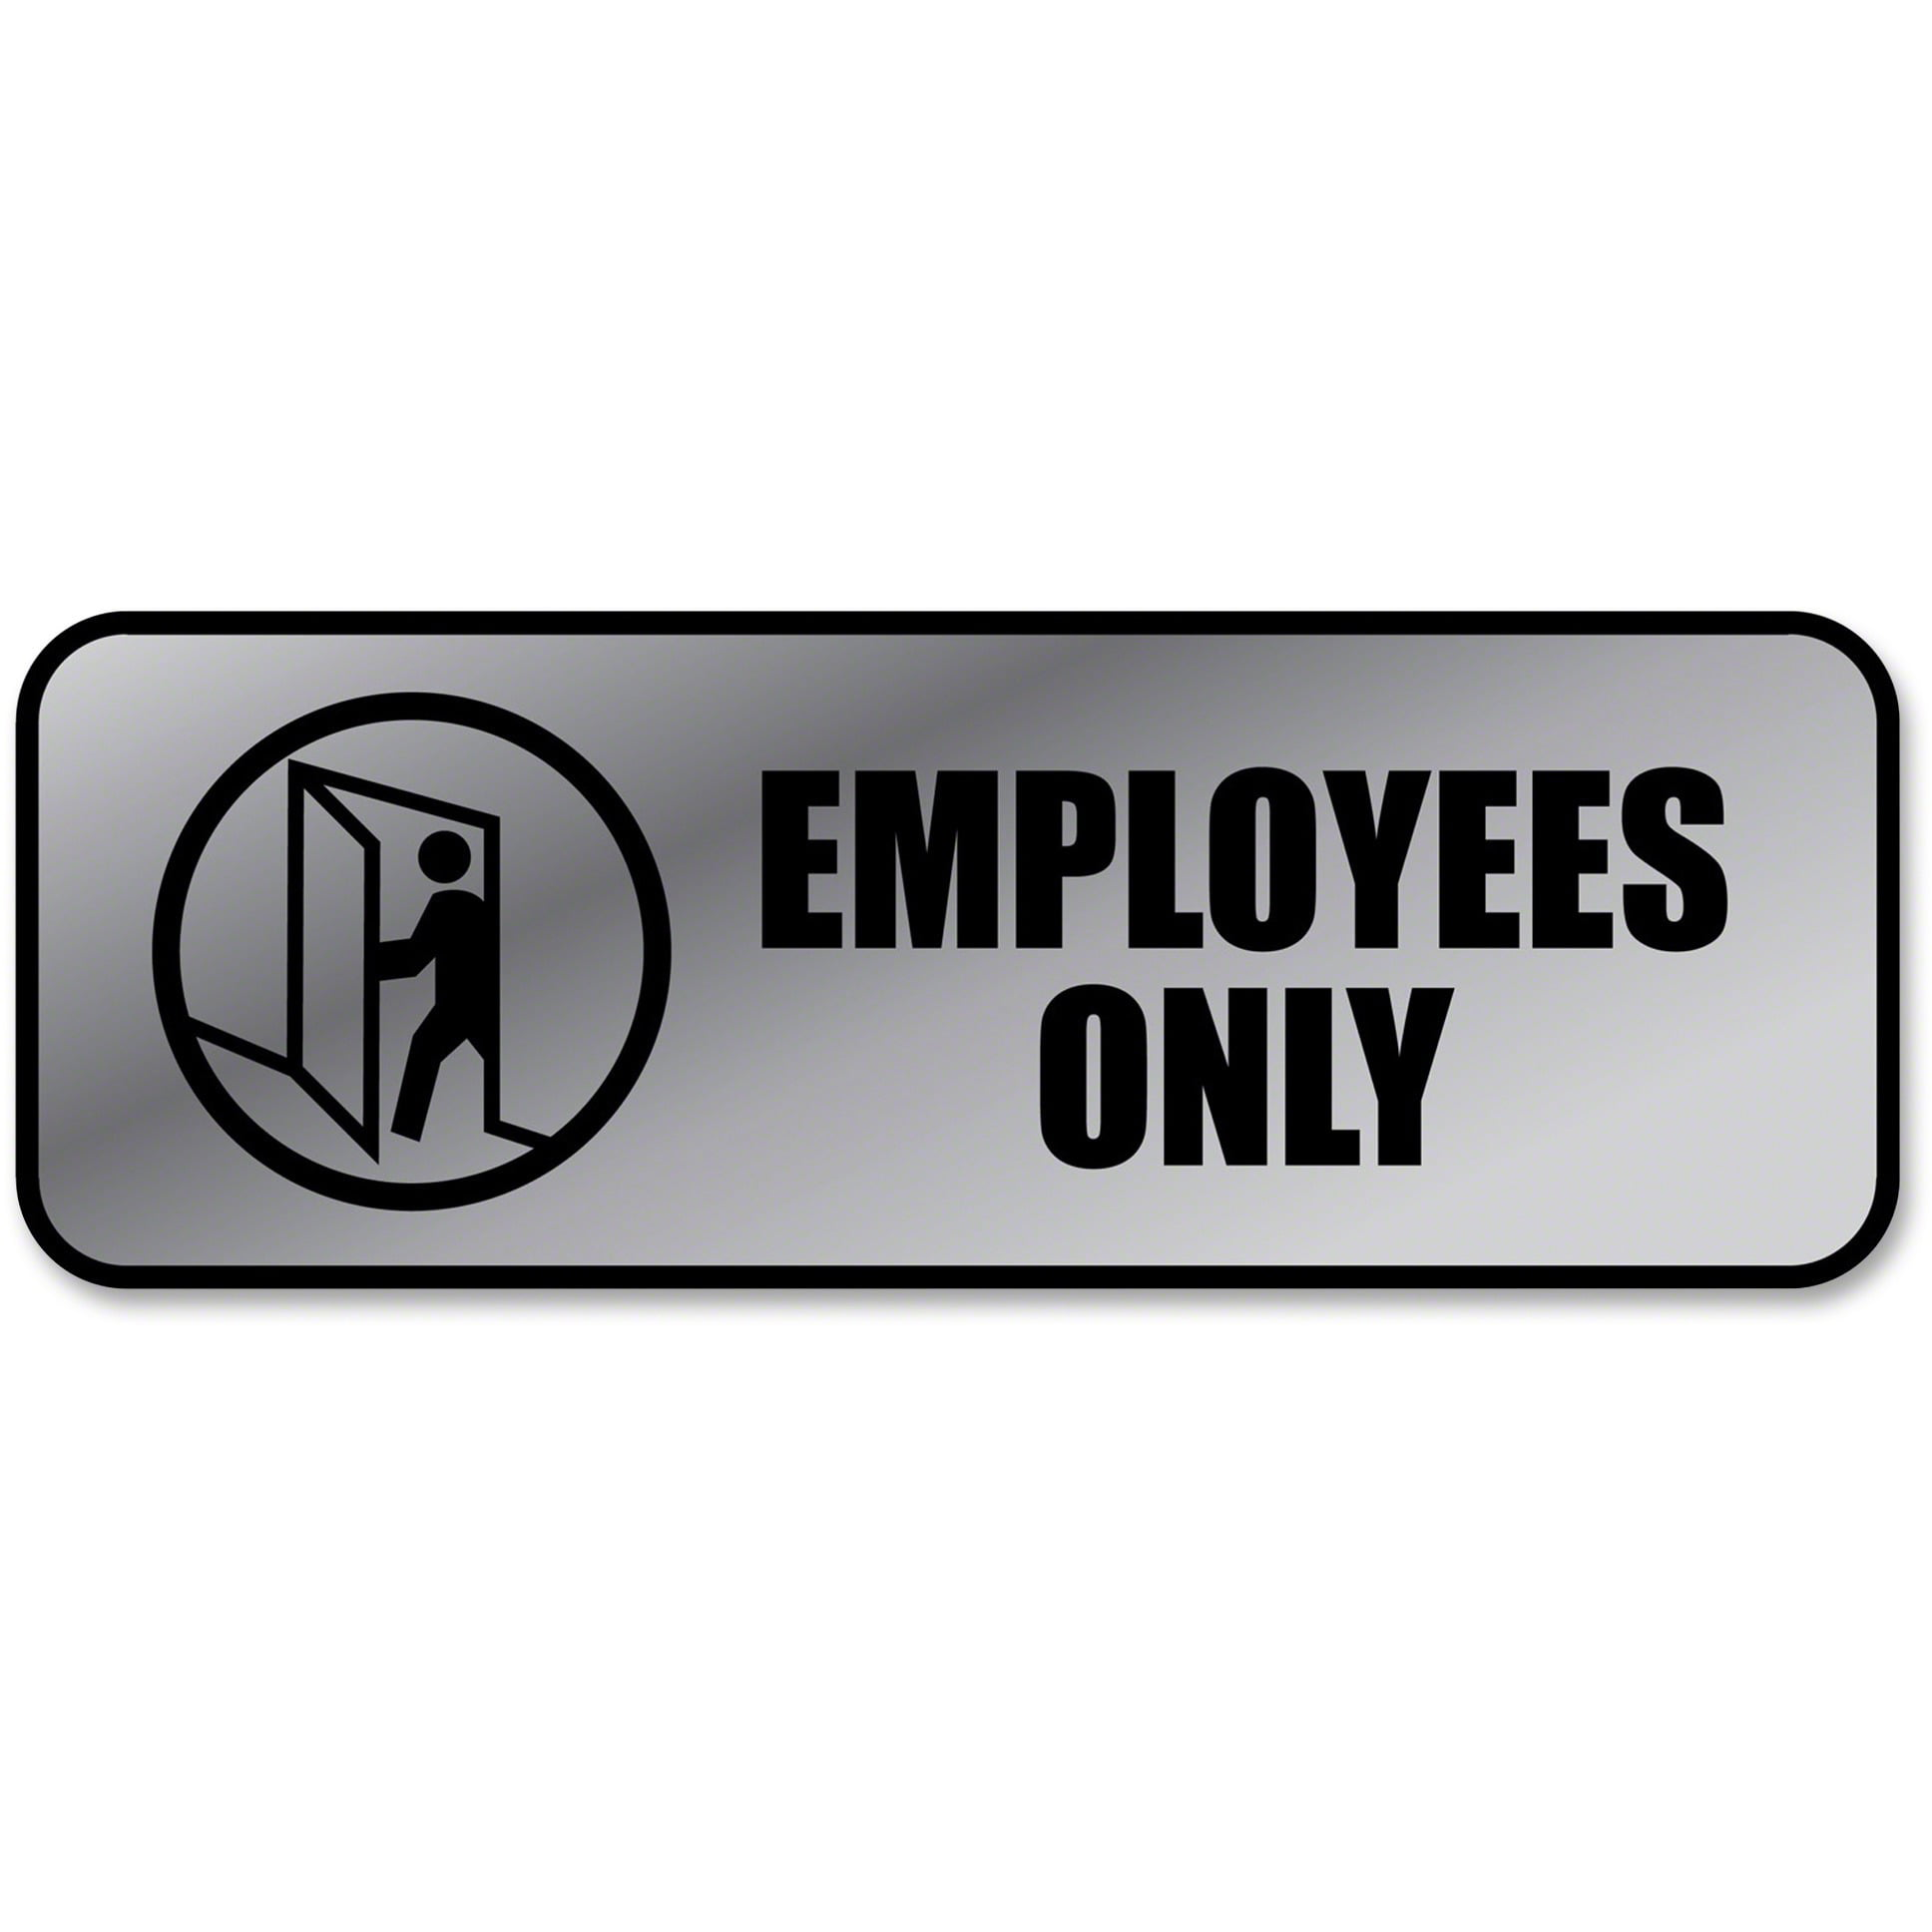 COSCO Brushed Metal Office Sign, Employees Only, 9 x 3, Silver by Cosco Industries, Inc